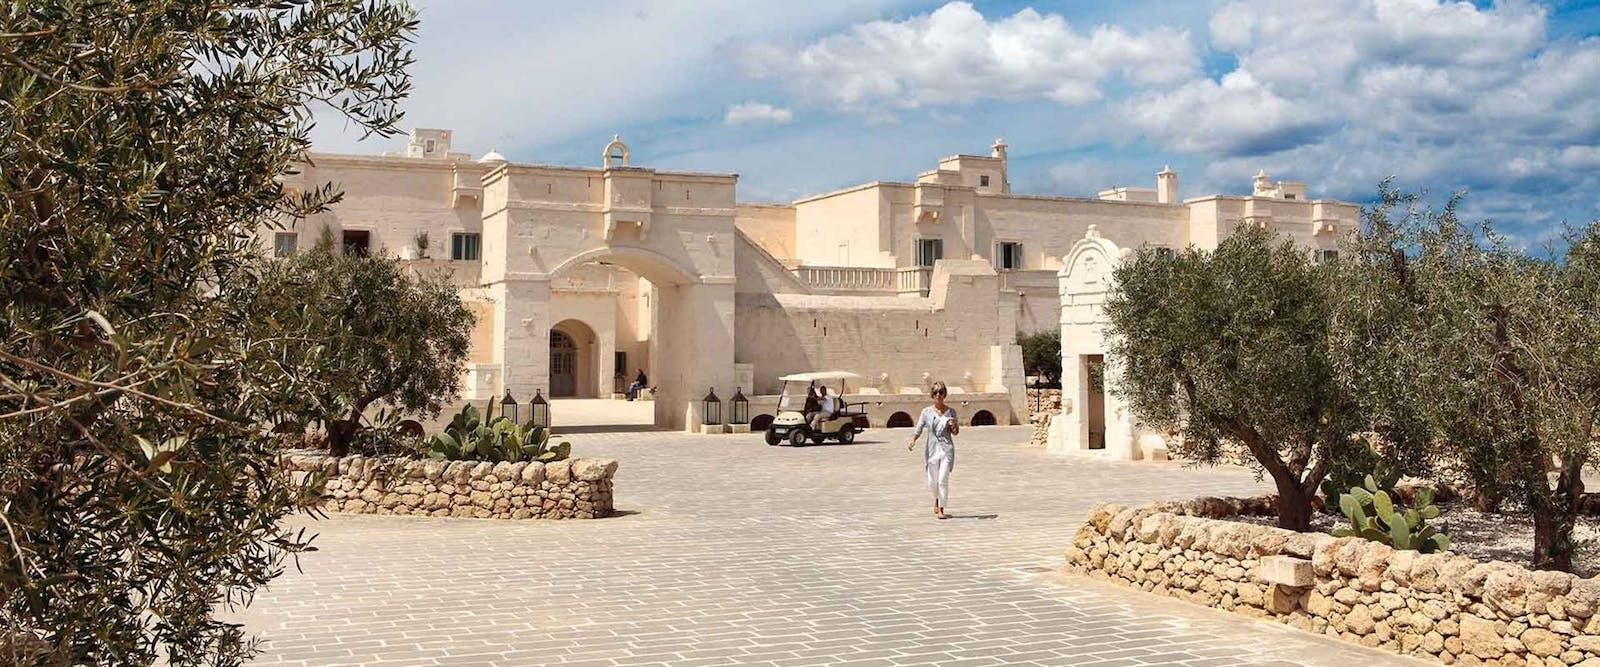 Main Entrance at Borgo Egnazia, Pulgia, Italy